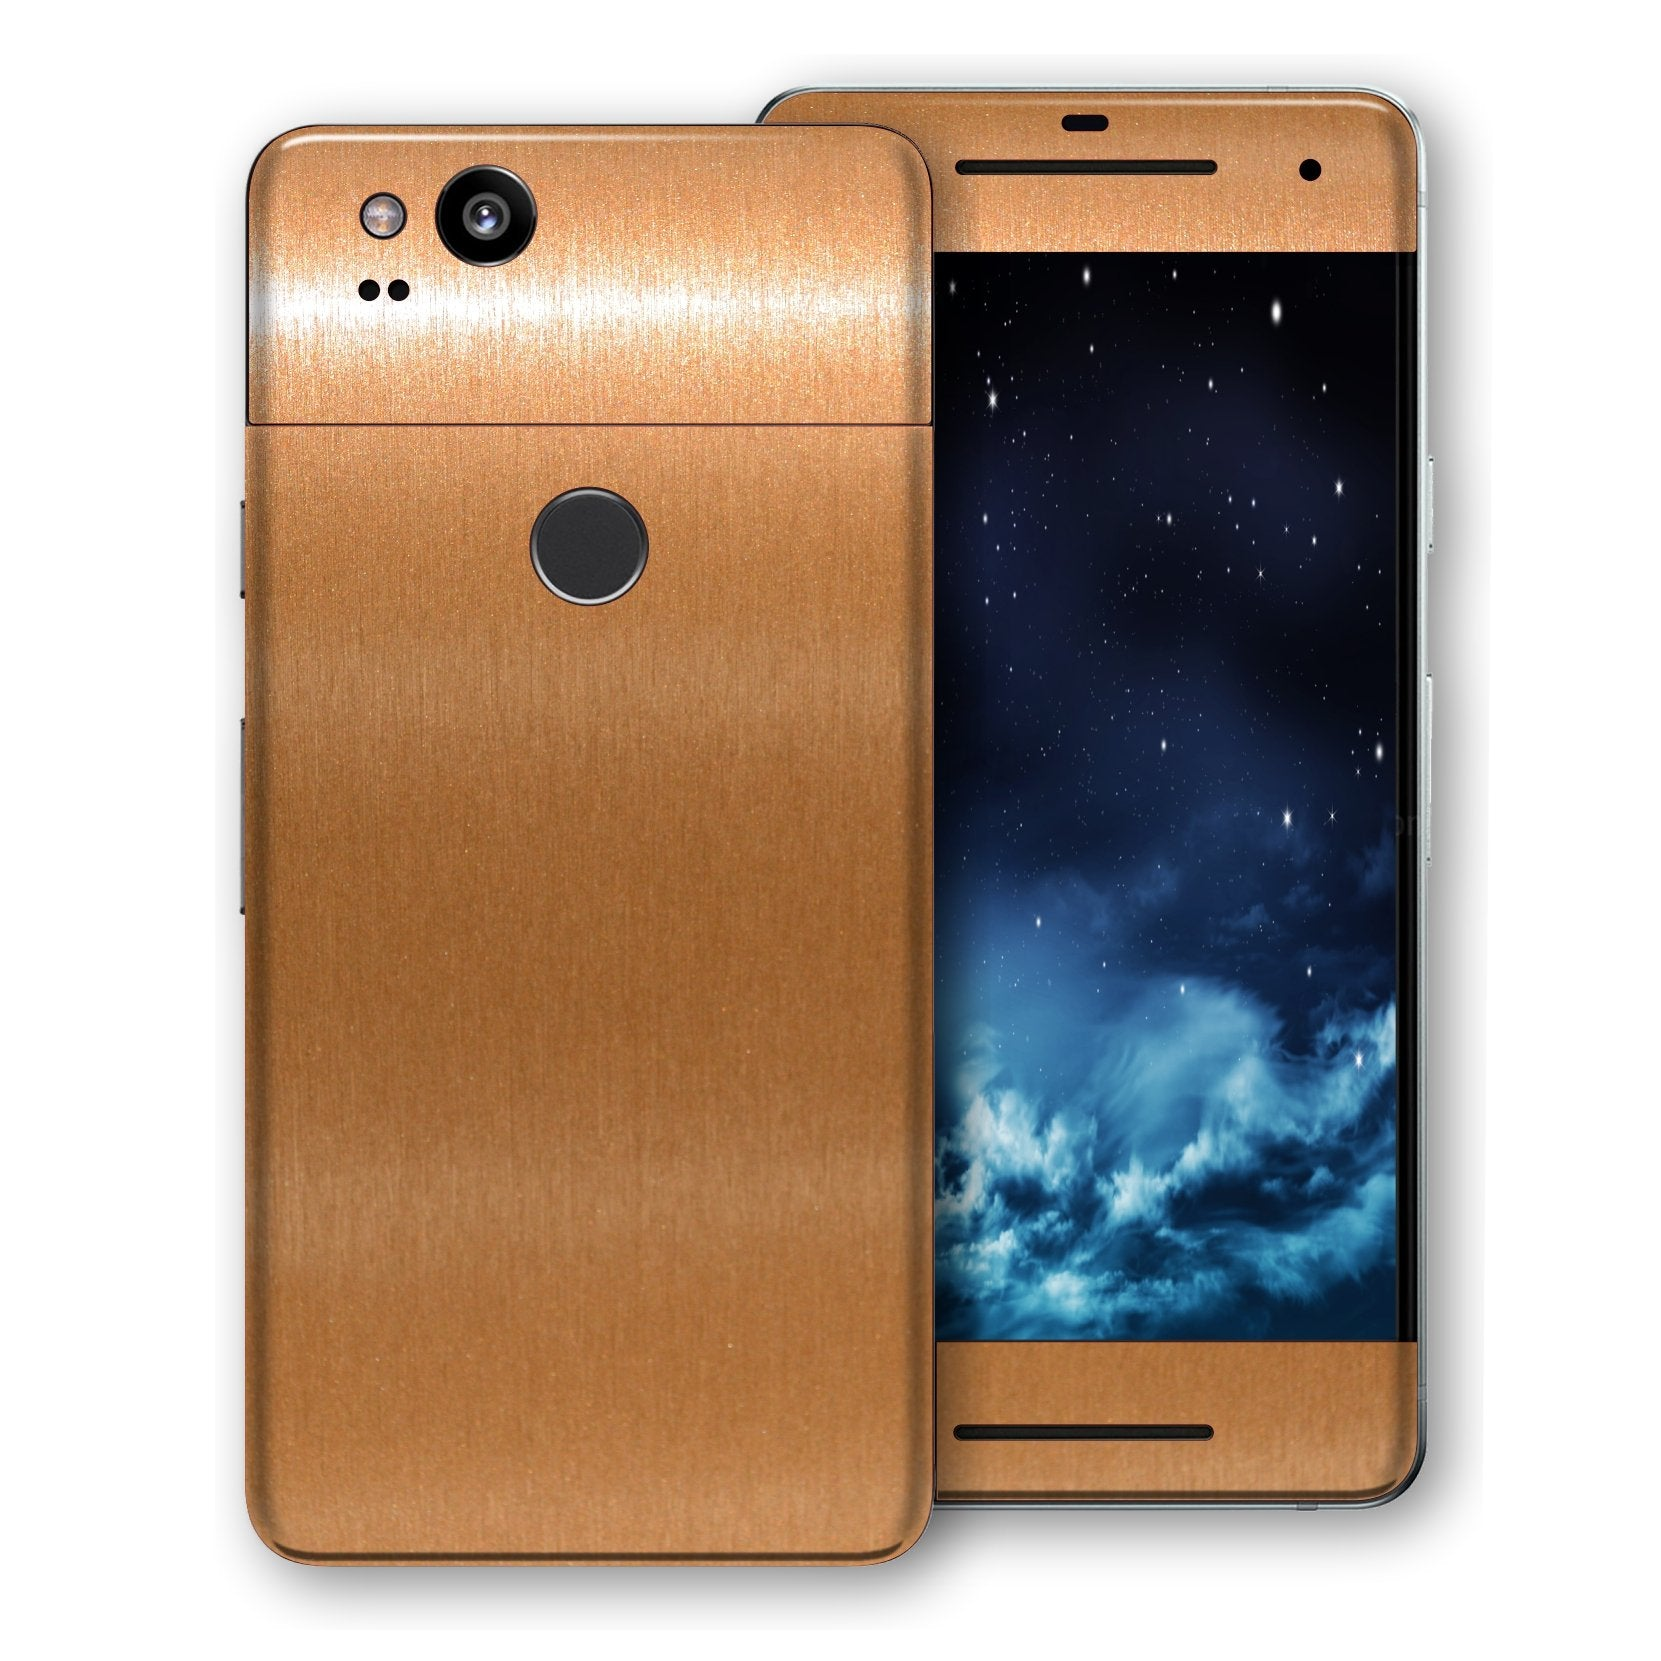 Google Pixel 2 Brushed Copper Metallic Metal Skin, Decal, Wrap, Protector, Cover by EasySkinz | EasySkinz.com